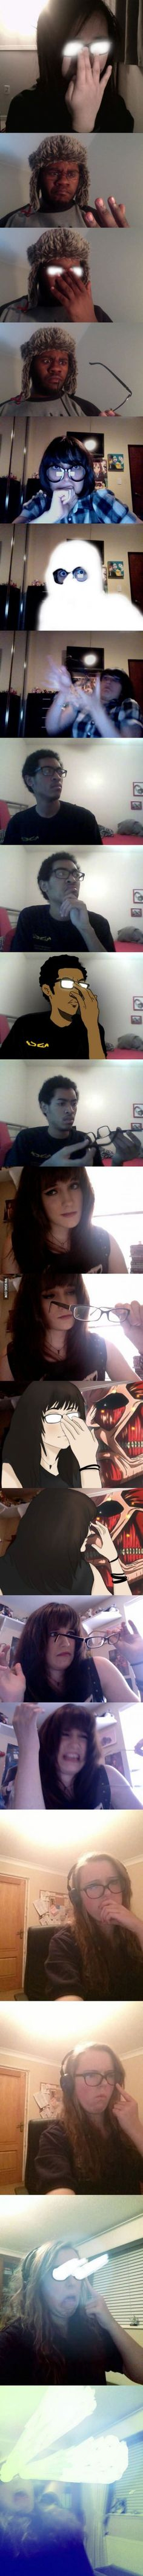 People doing the anime glasses thing